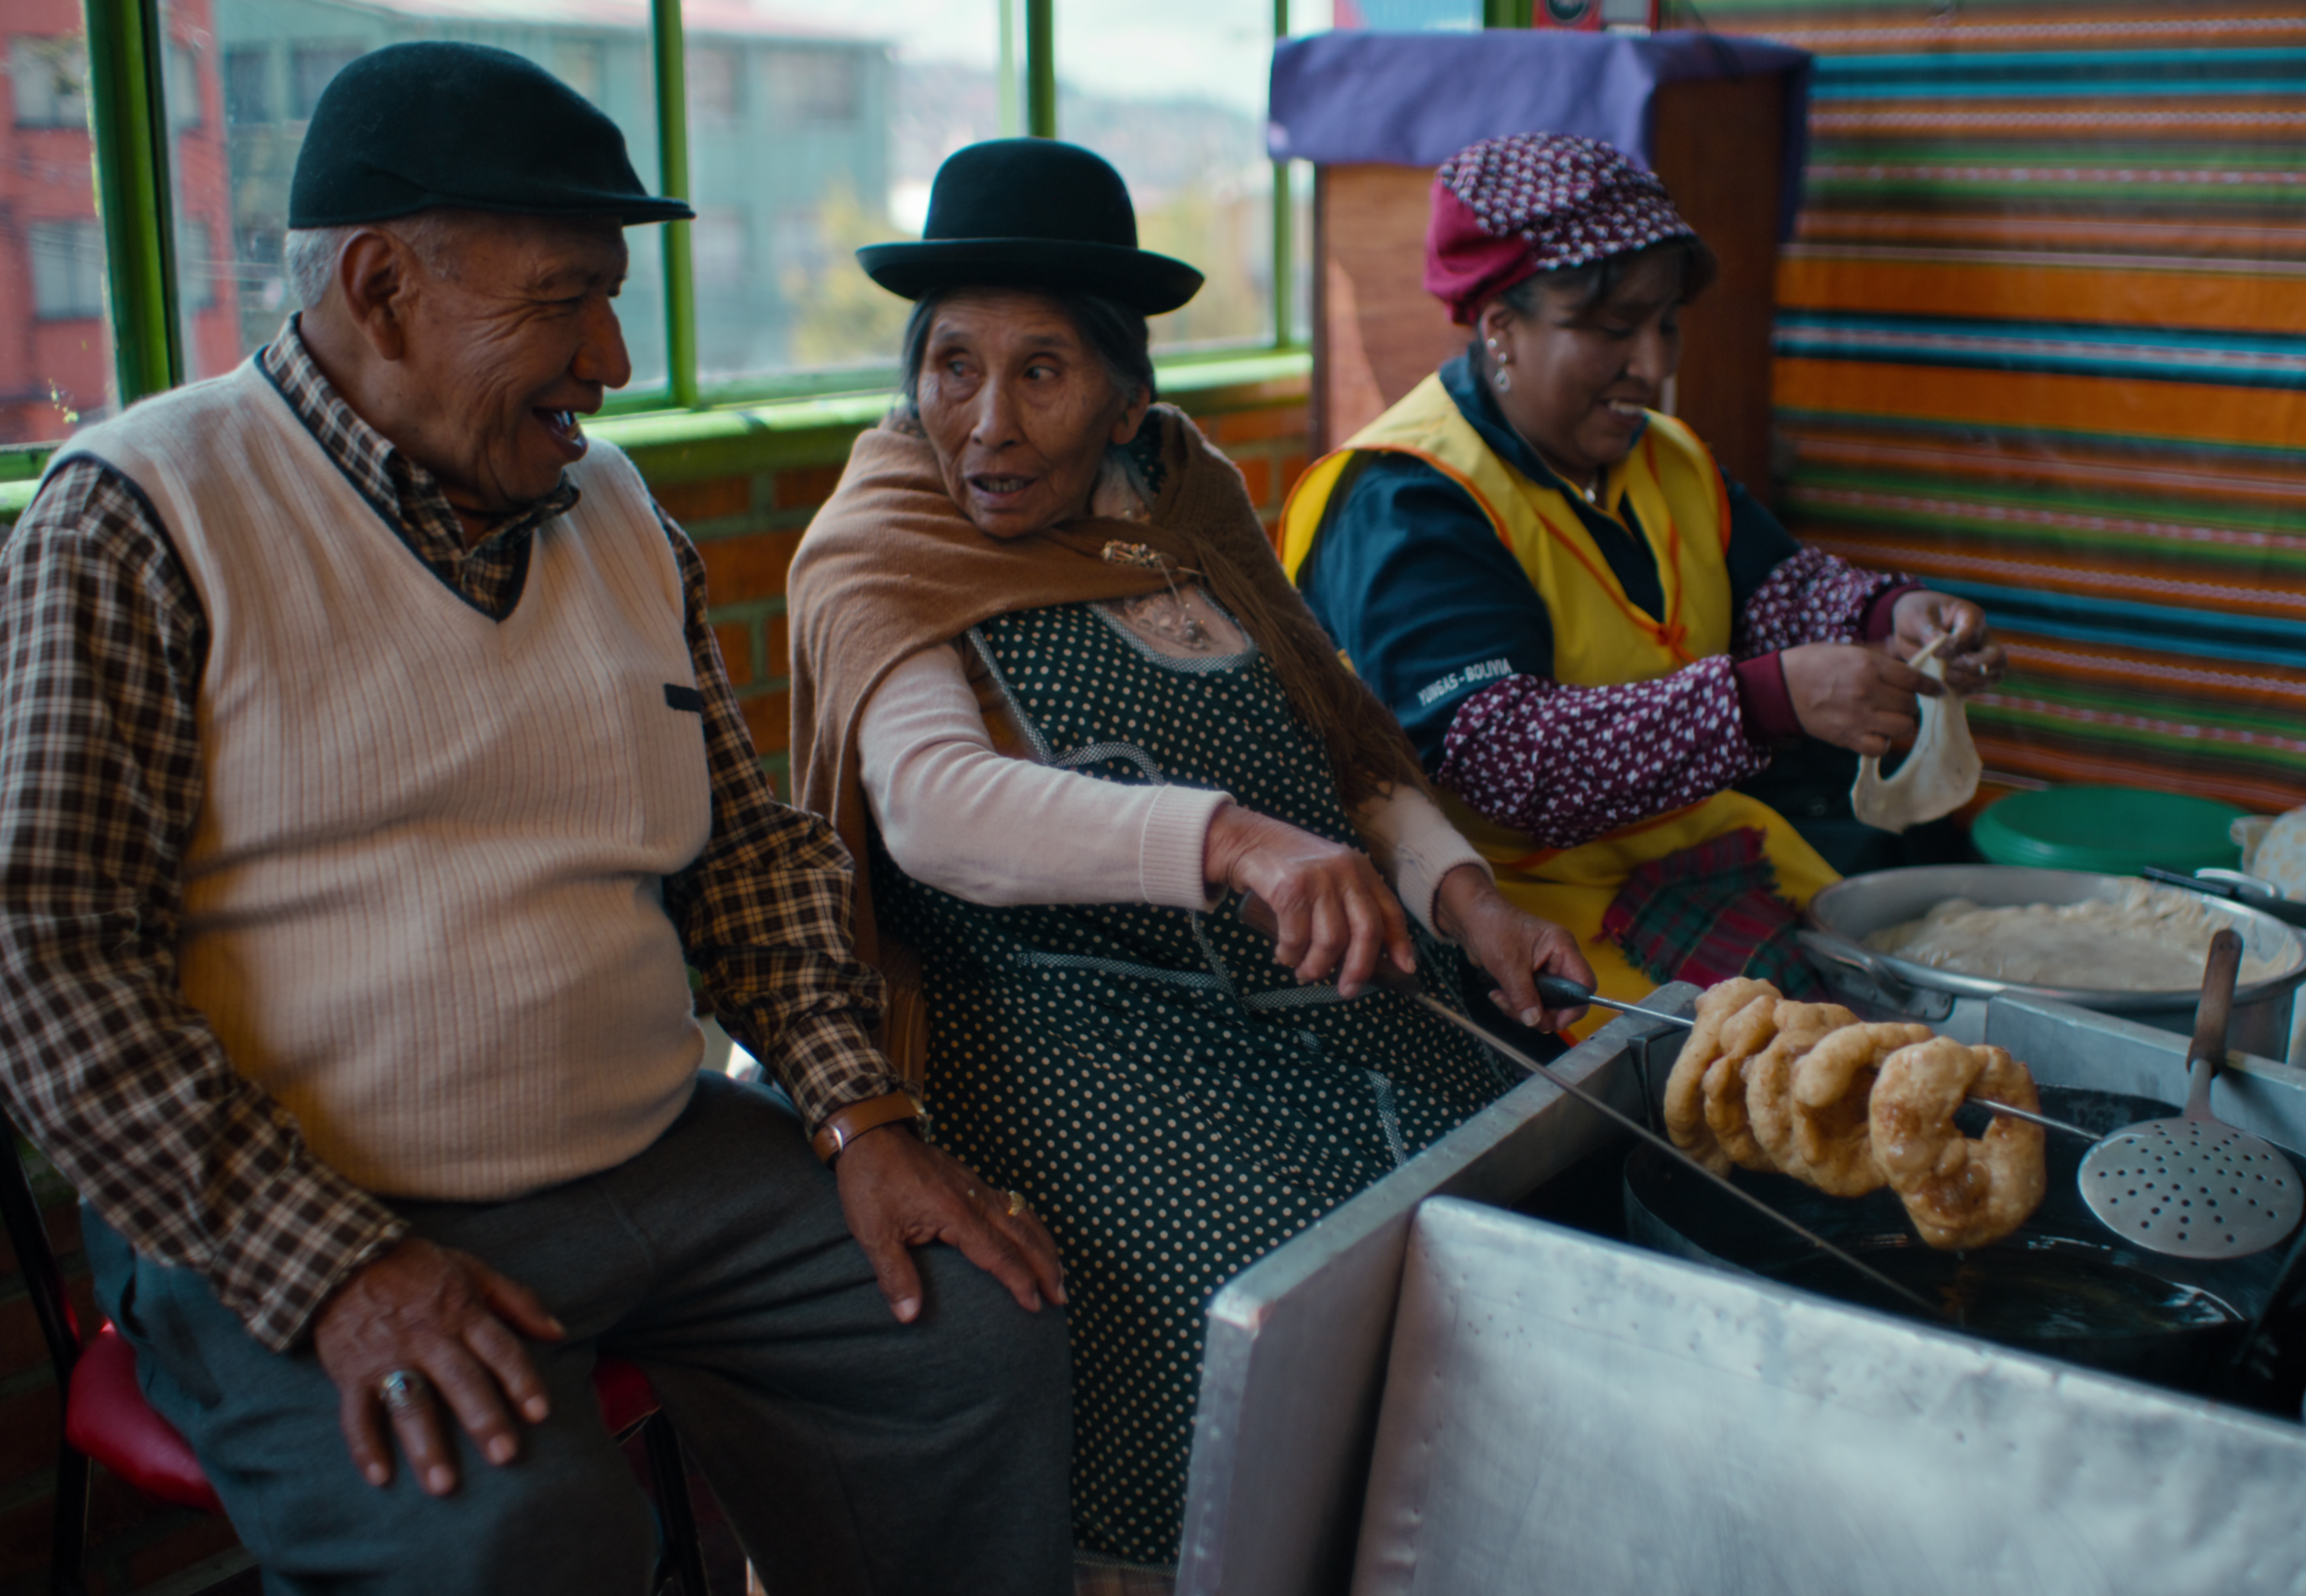 In Bolivia, an elderly man in a white sweater vest and black cap chats with two women in aprons as they prepare and fry dough in a room decorated in bright colored blankets.